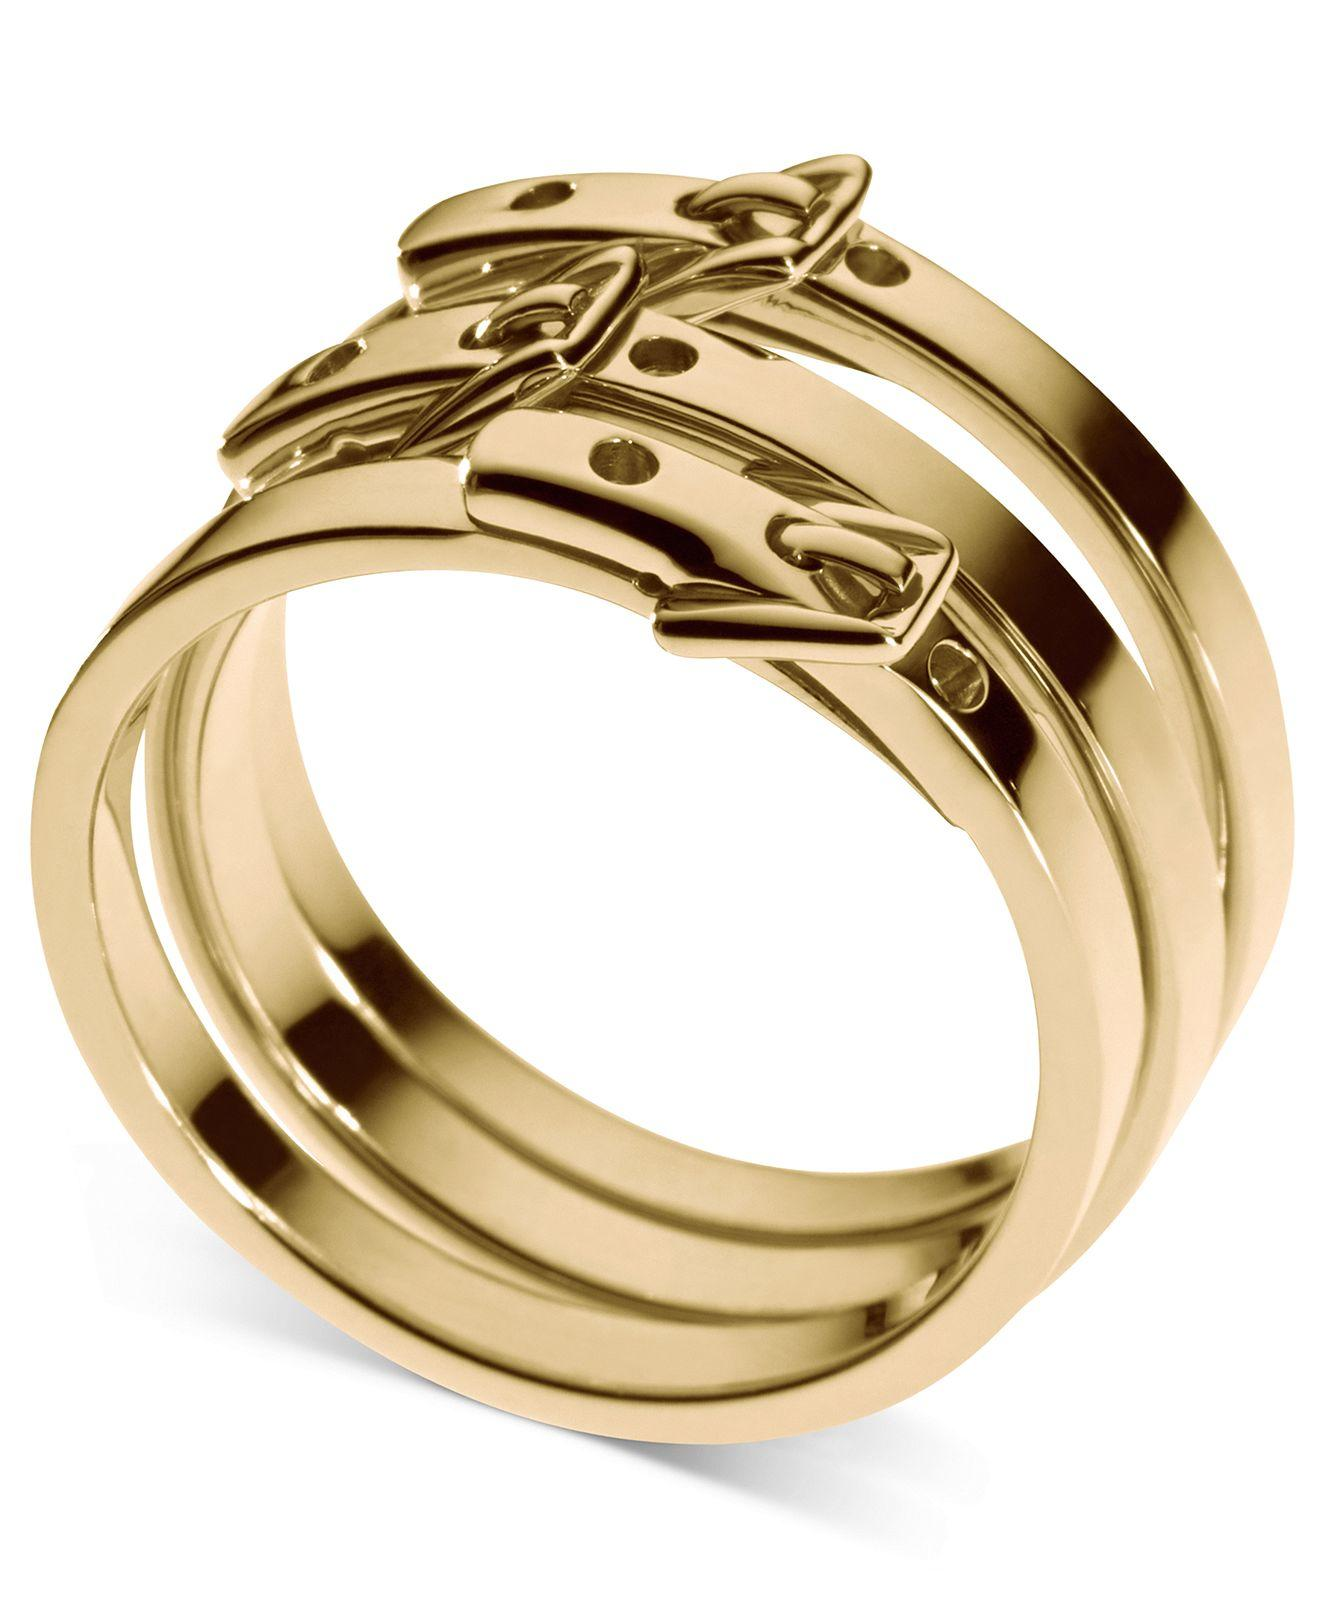 Michael Kors Ring Set Gold Ion Plated from Macys